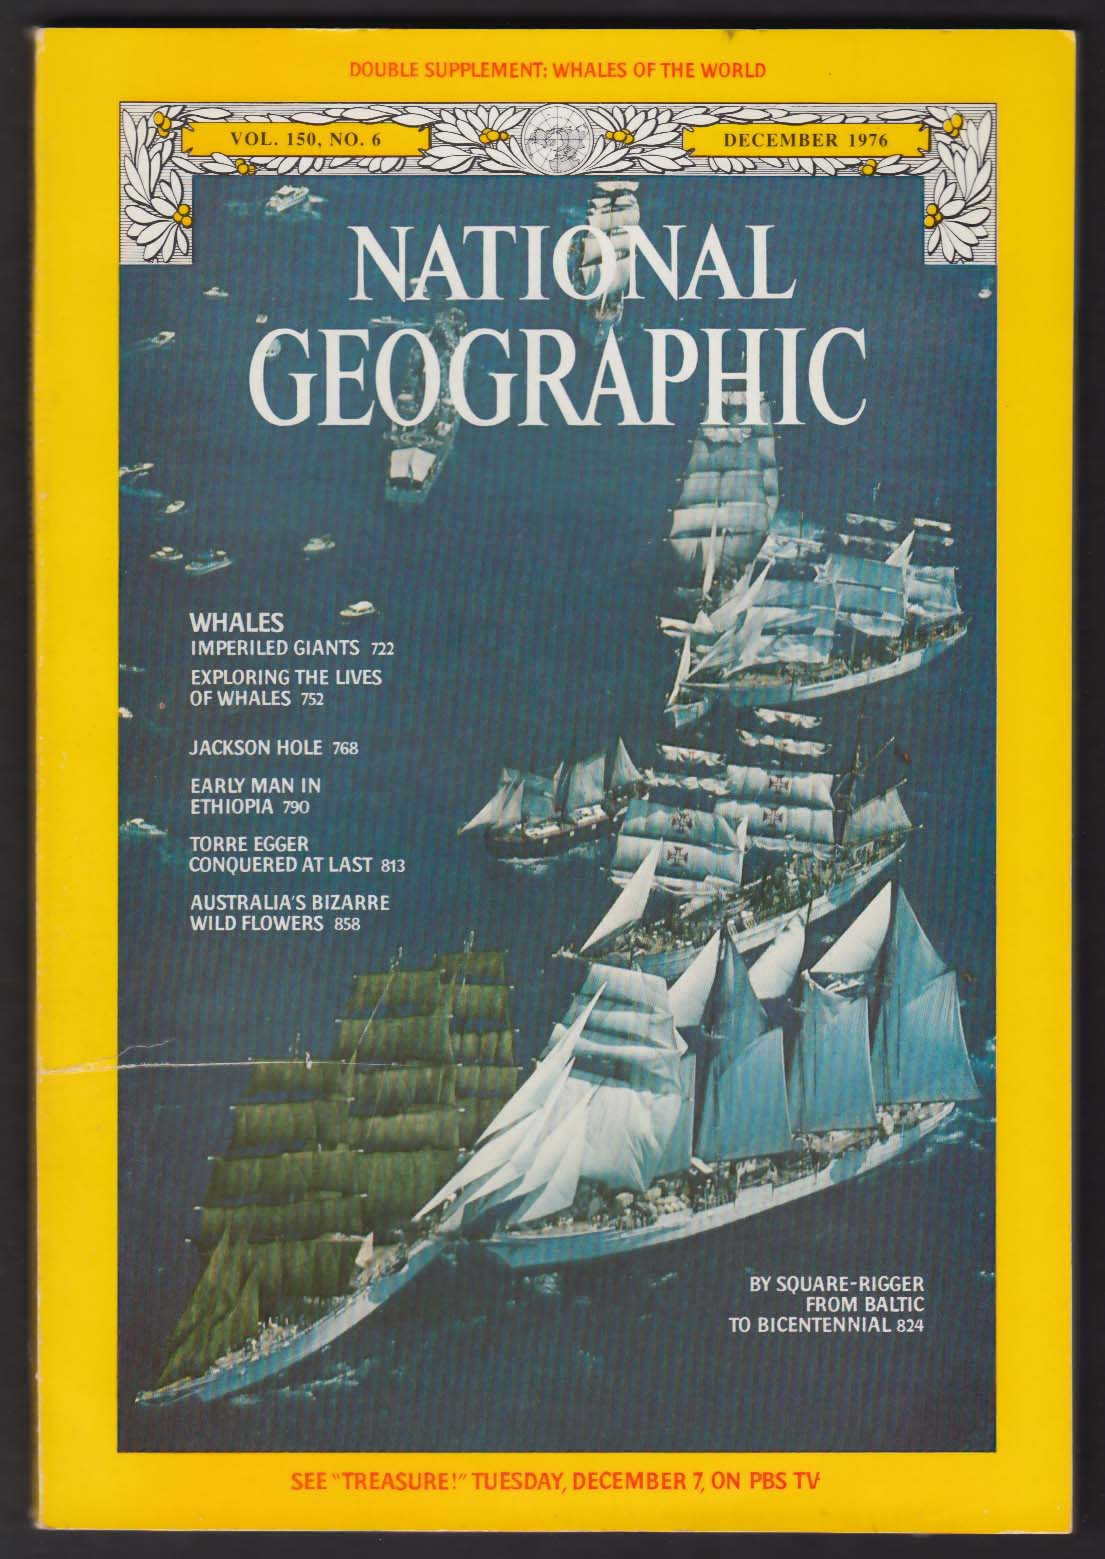 NATIONAL GEOGRAPHIC Square Rigger Dar Pomorza Baltic Bicentennial 12 1976